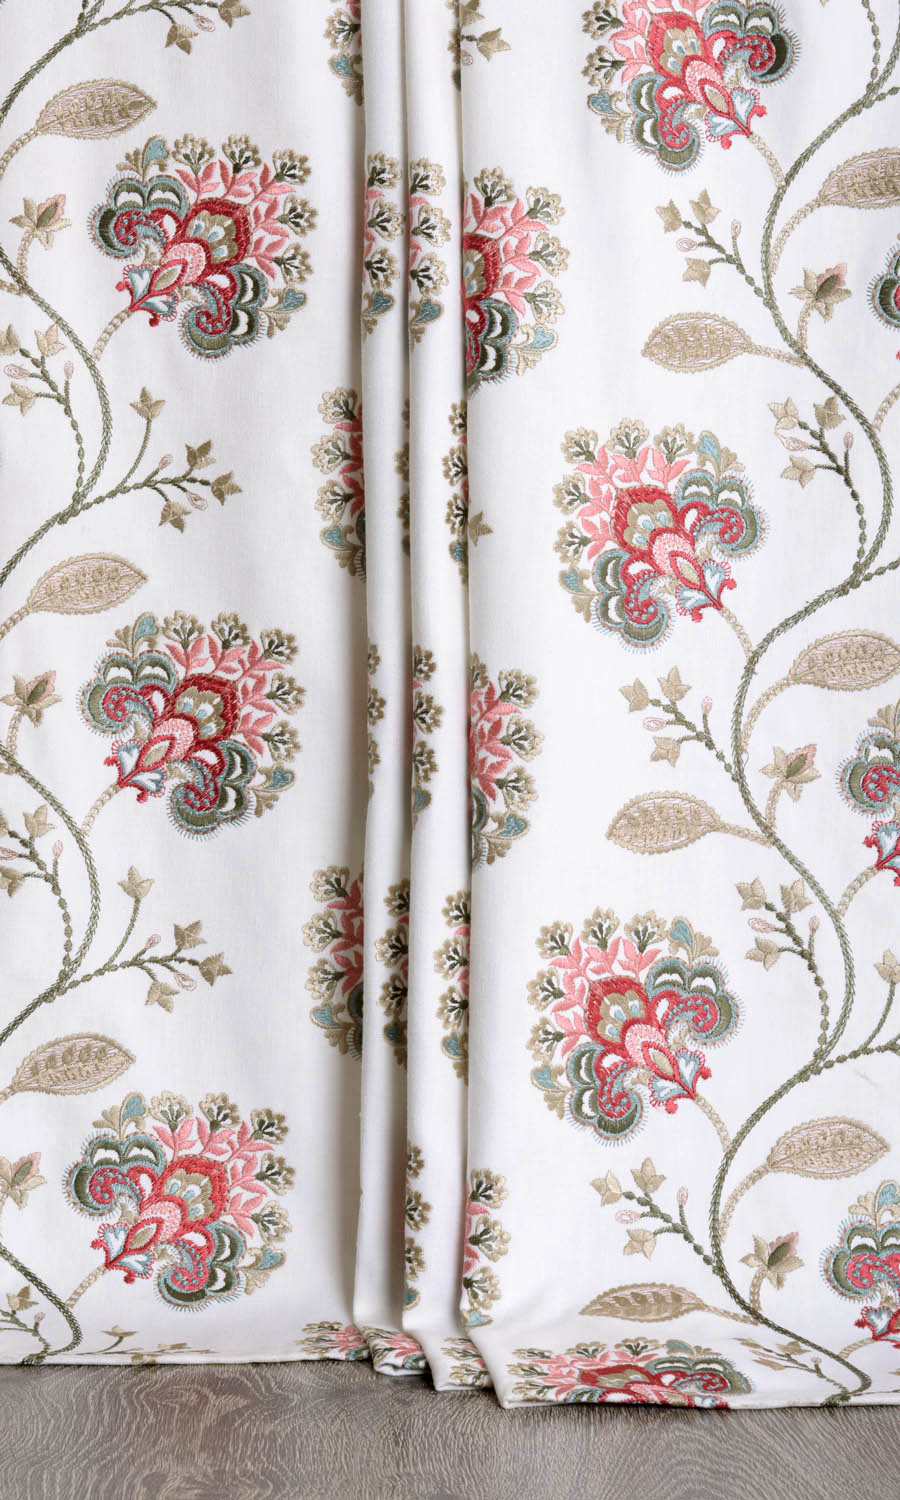 Floral Patterned Extra Long Curtains